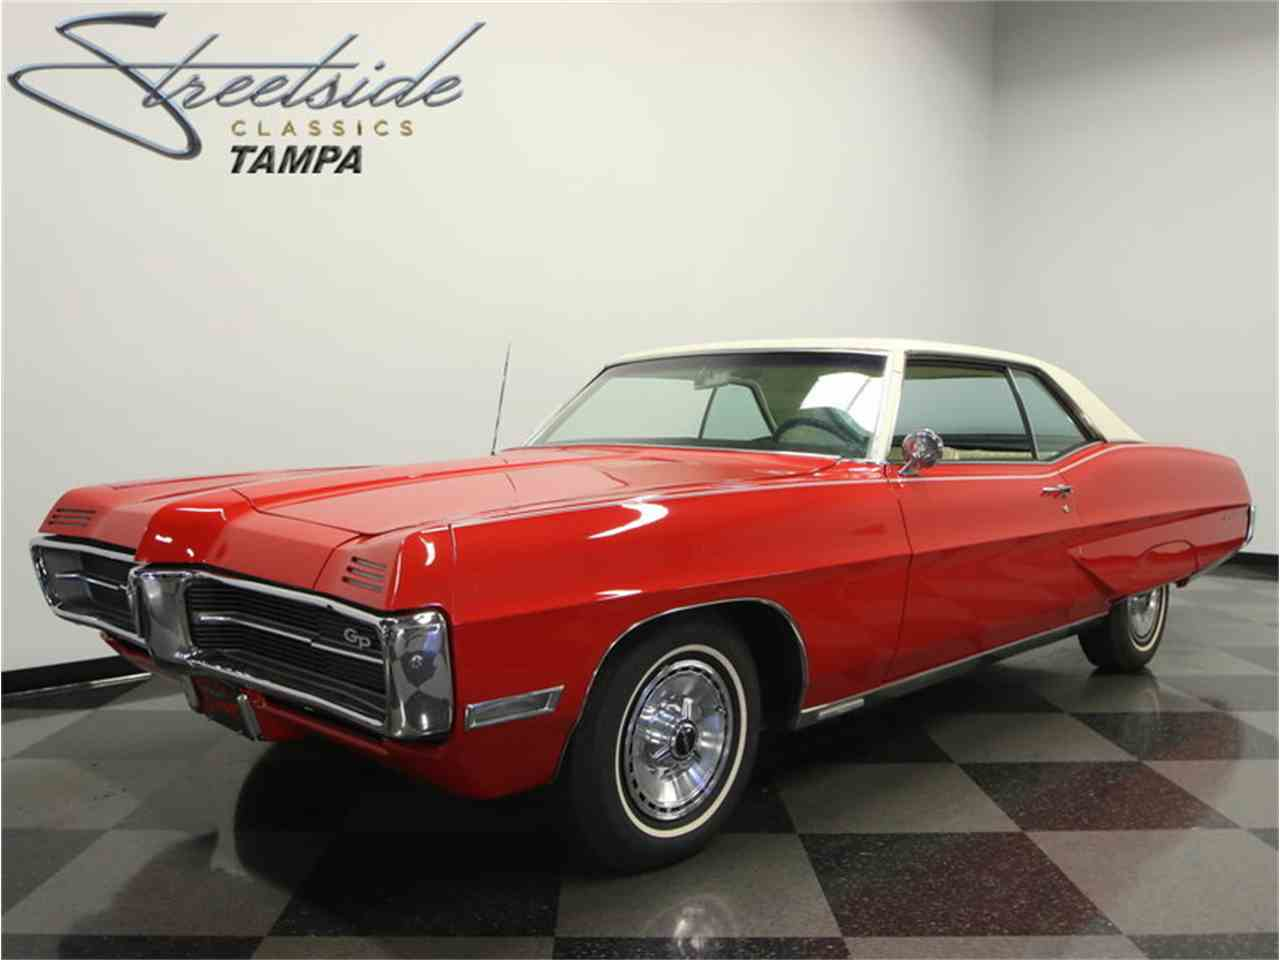 Large Picture of 1967 Pontiac Grand Prix located in Lutz Florida - $24,995.00 - JUBA